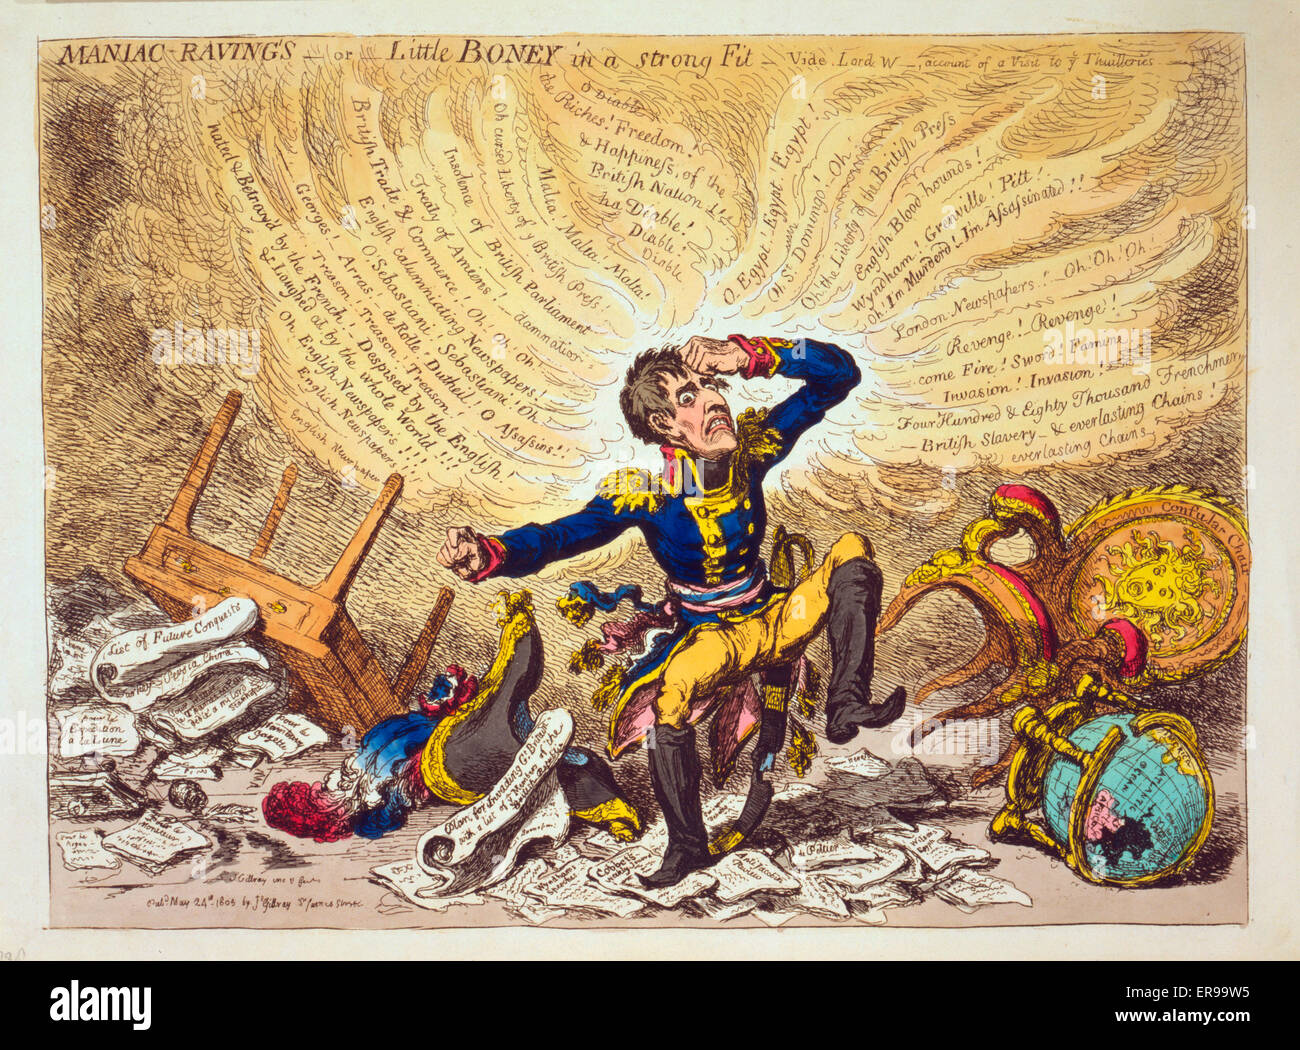 Maniac-raving's-or-Little Boney in a strong fit. Cartoon showing Napoleon in a fury over relations between France - Stock Image